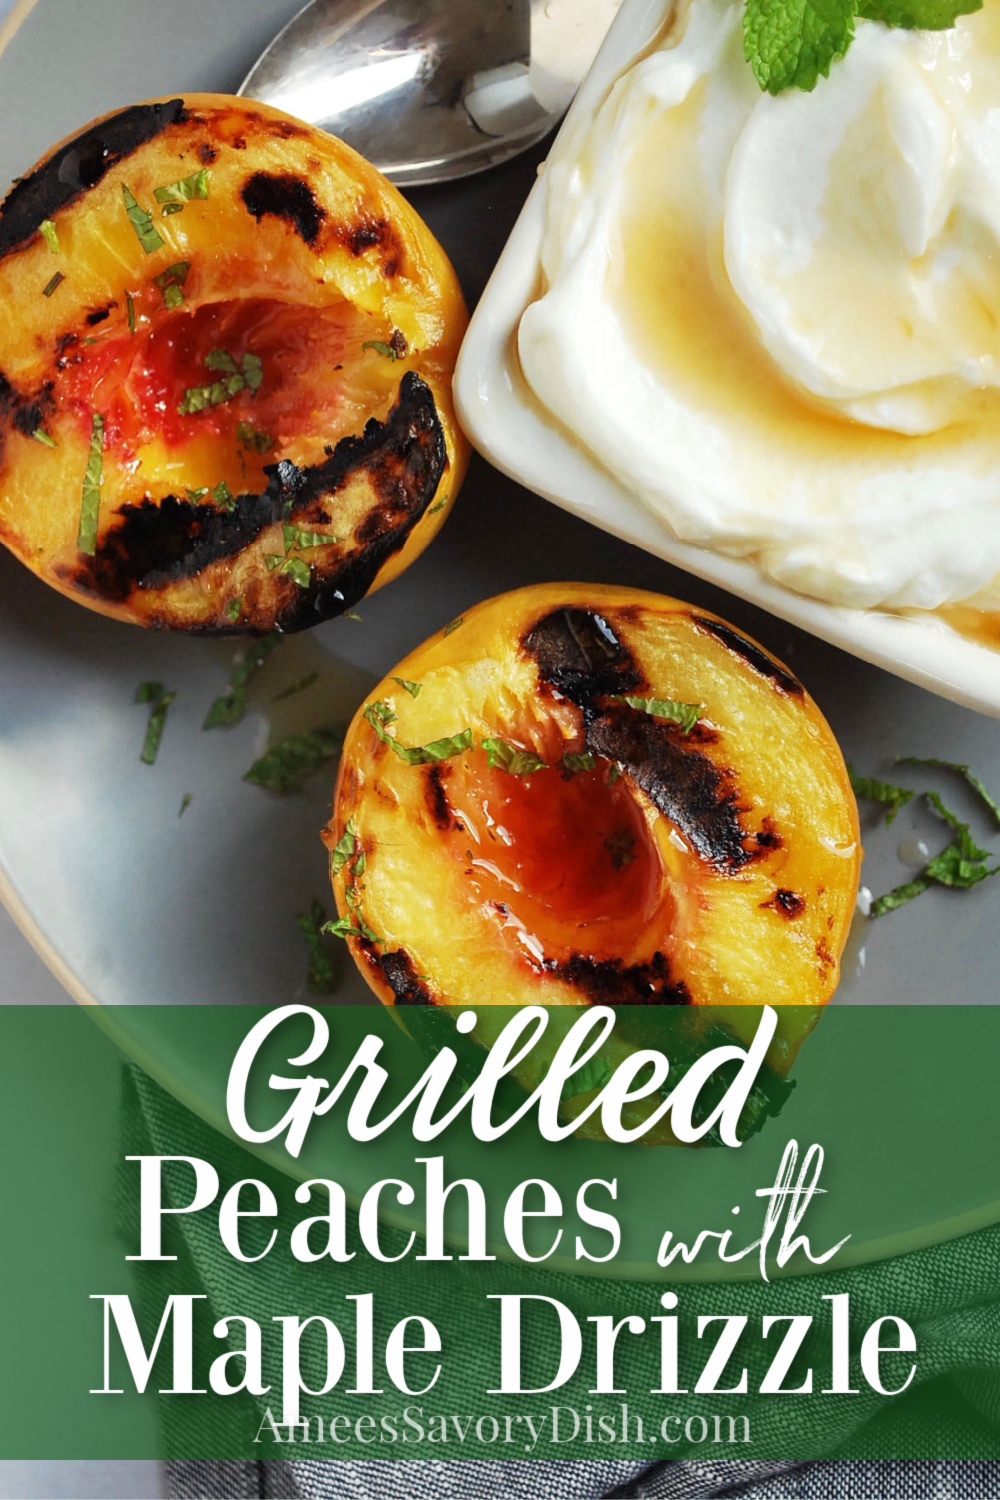 An easy recipe for grilled peaches drizzled in pure maple syrup served with freshly chopped mint leaves for a delicious garnish.  Serve with full-fat plain Greek yogurt for a delicious breakfast, snack, or dessert. #grilledpeaches #peachrecipe #peachdessert #grilleddesserts #healthydessert via @Ameecooks